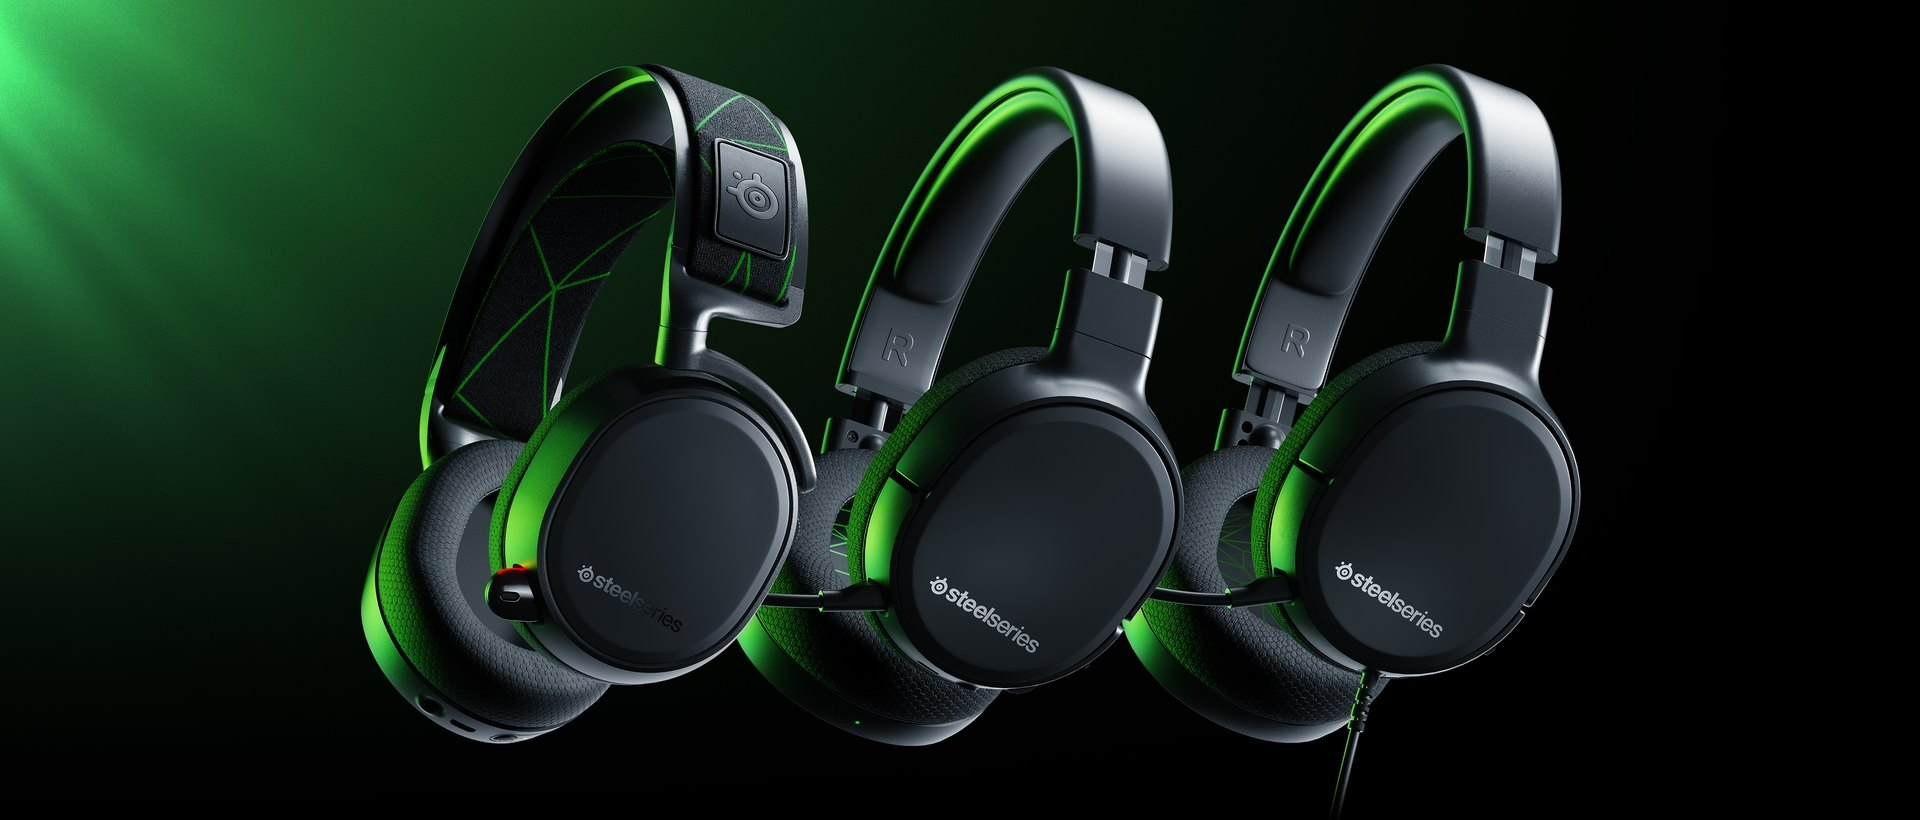 The Arctis 1, Arctis 1 Wireless, and Arctis 9X headsets, all designed for Xbox